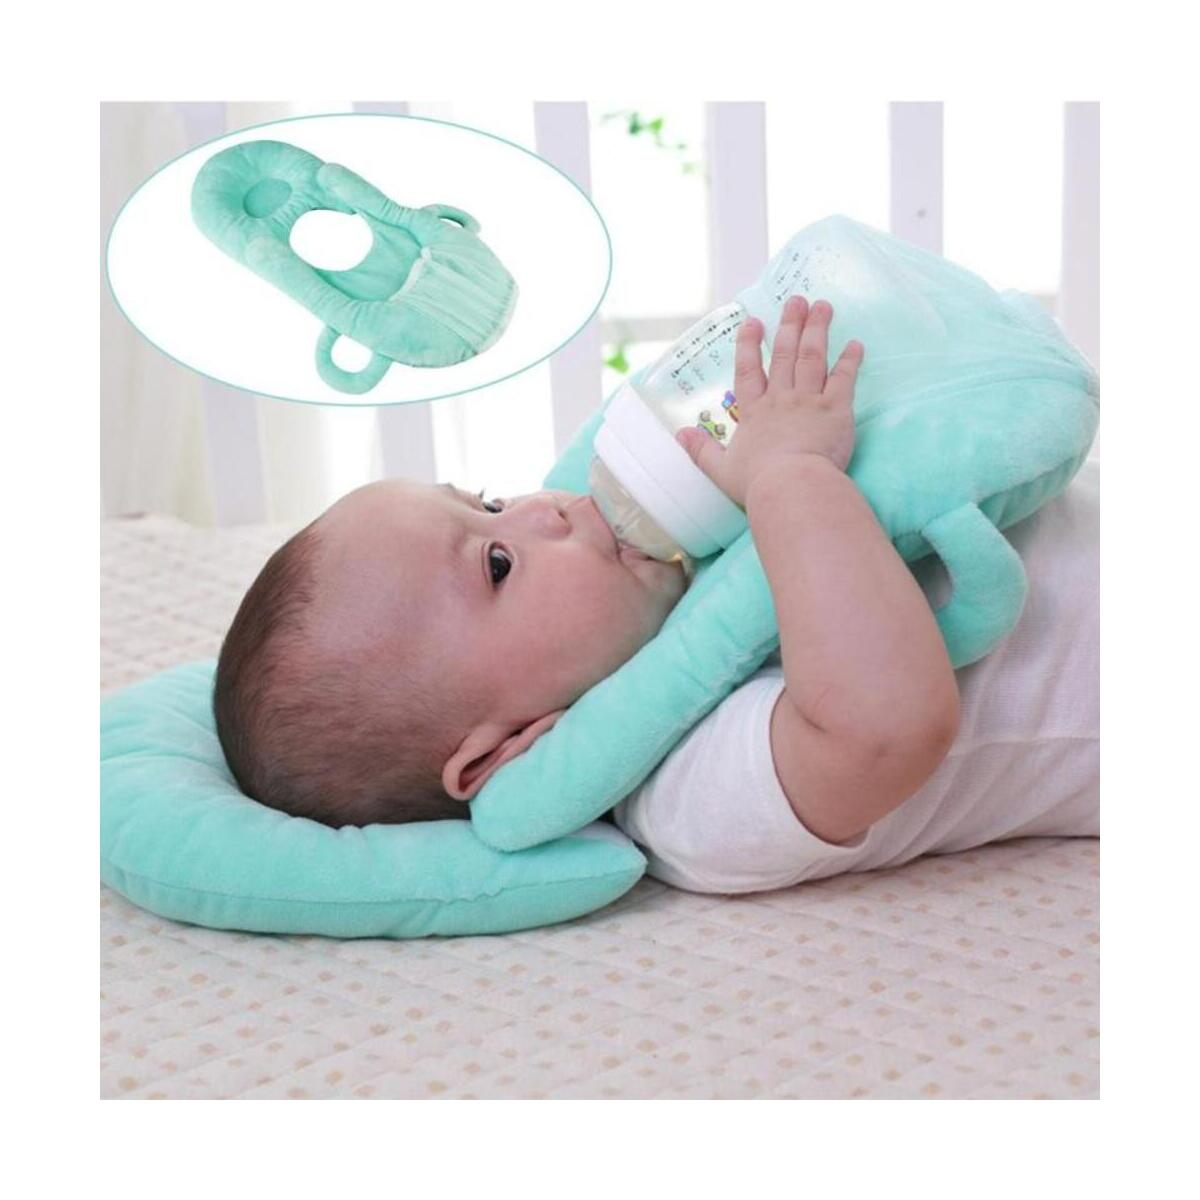 Baby Learning Nursing Pillow Cushion Baby Free Hand Bottle Holder Cotton Infant Multifunctional Feeding Breastfeeding Pillow